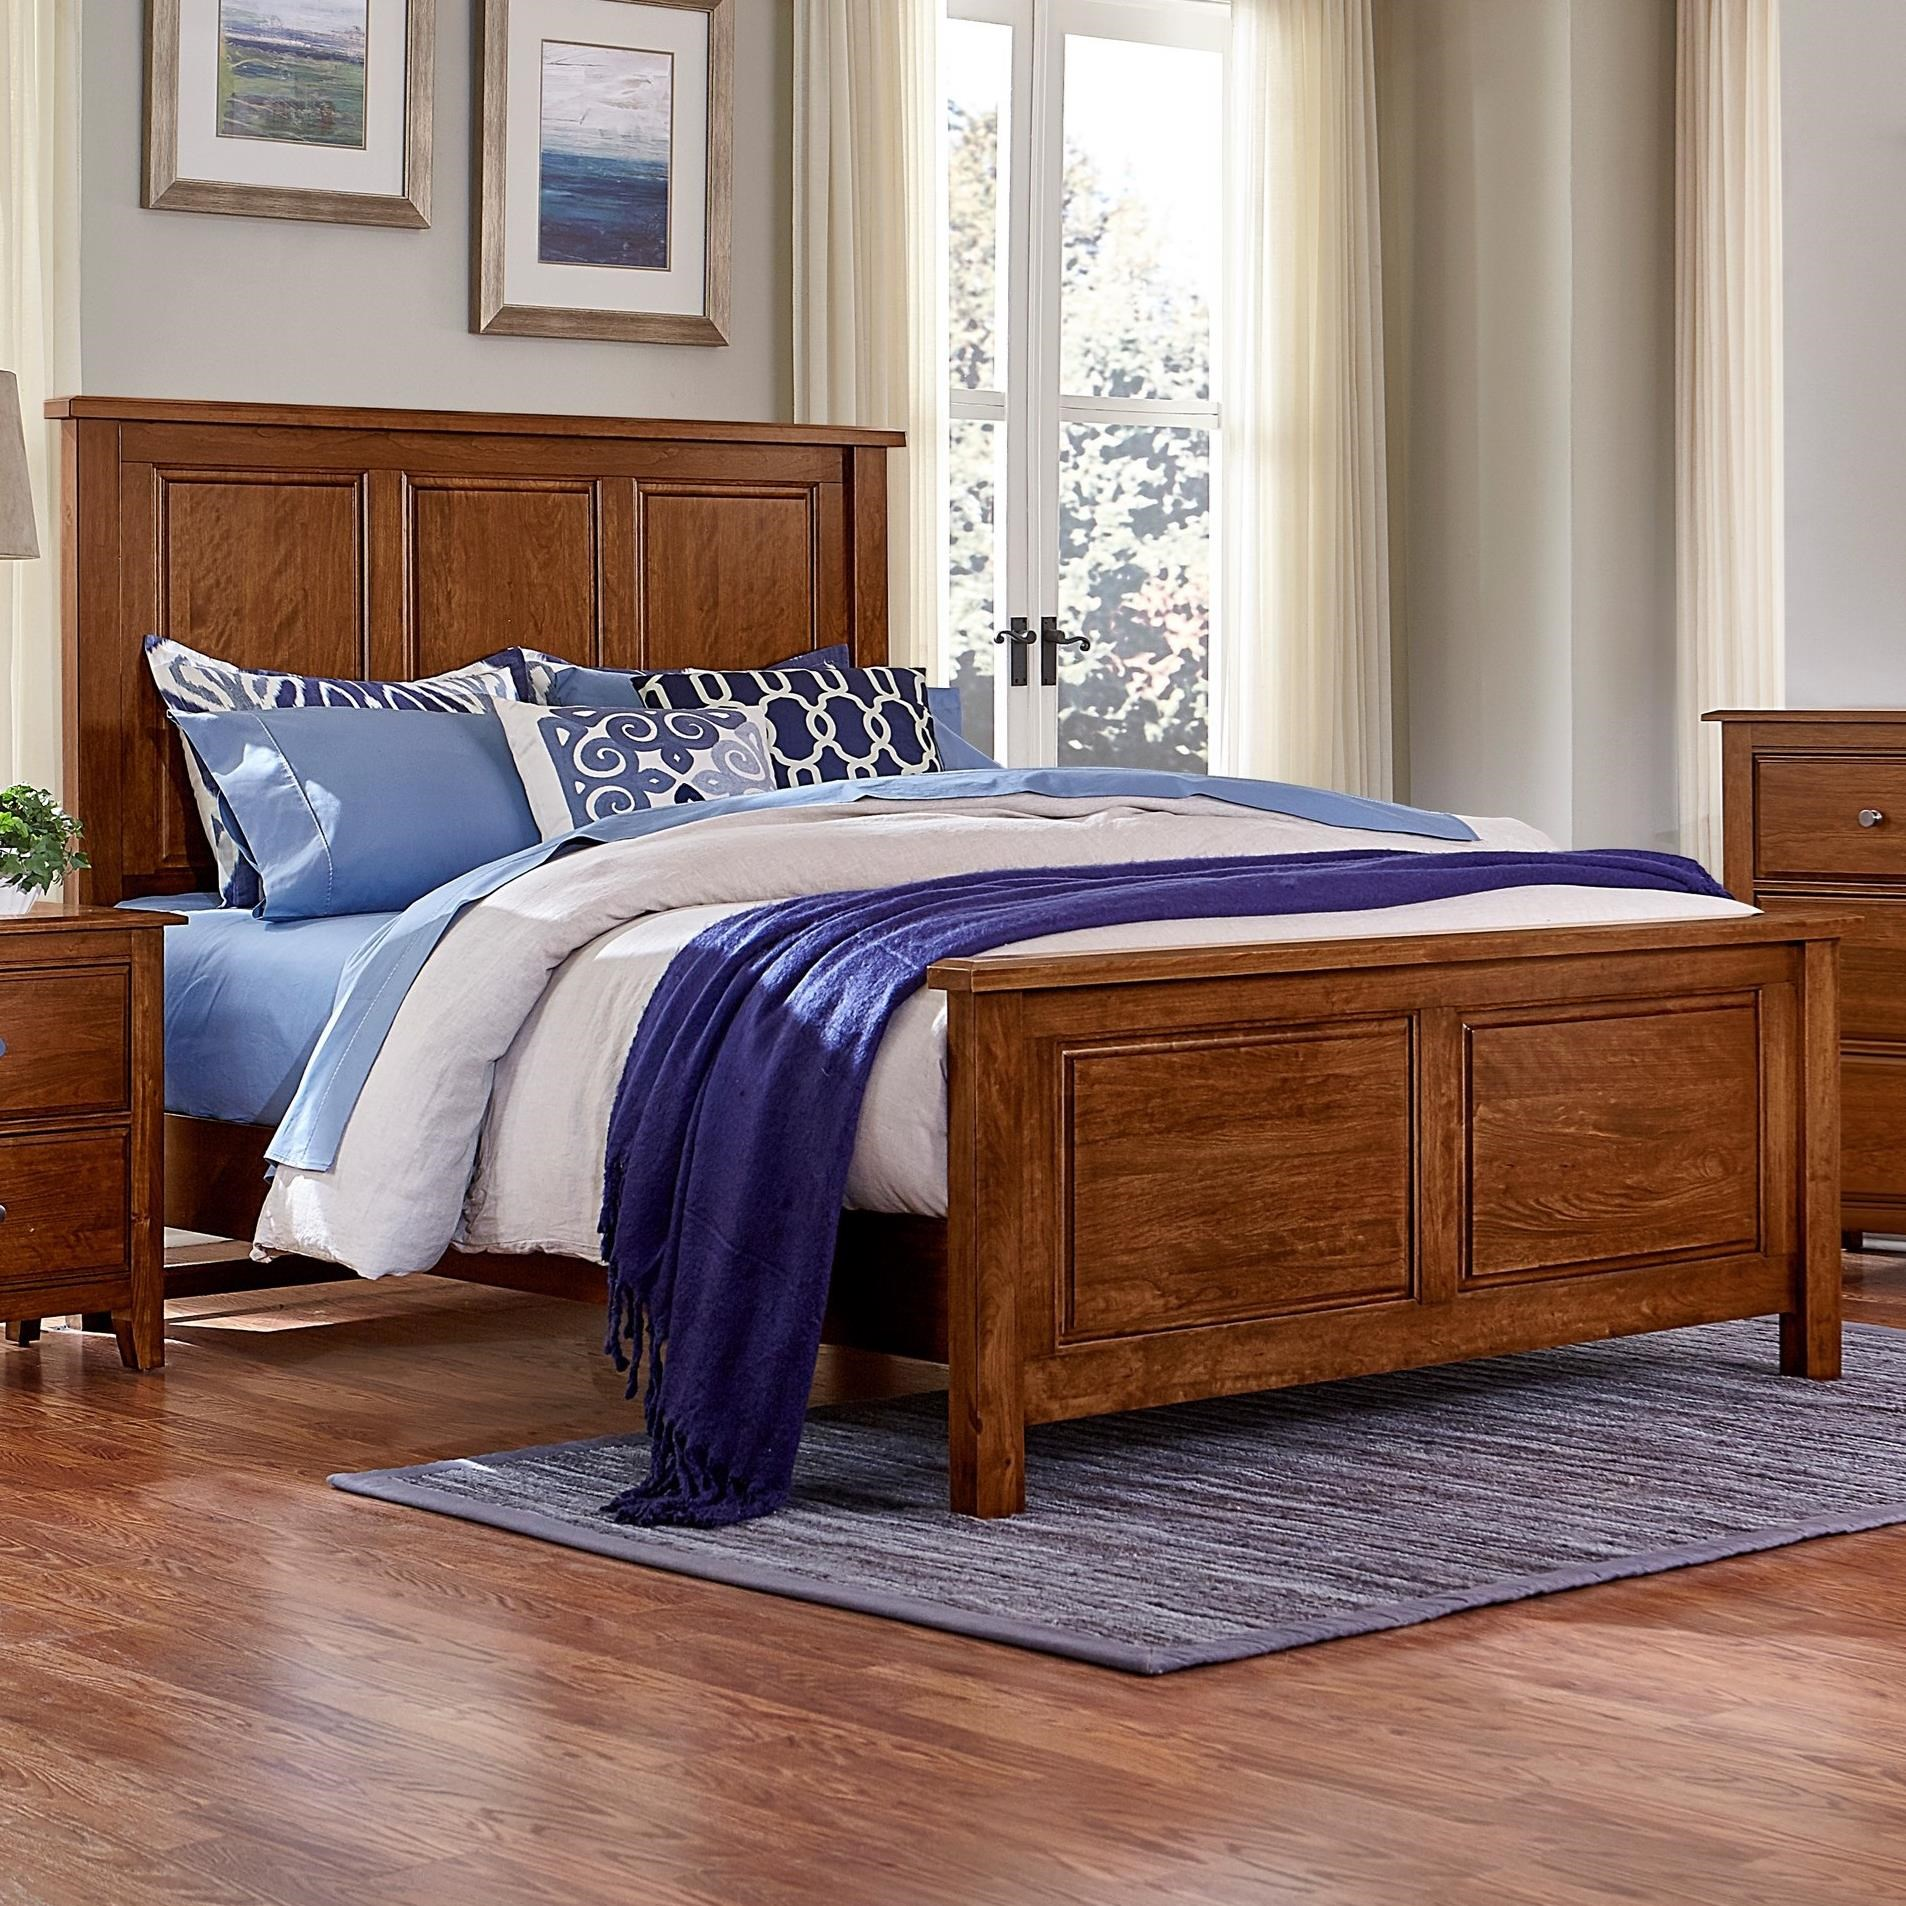 Artisan Choices Queen Panel Bed by Artisan & Post at Johnny Janosik